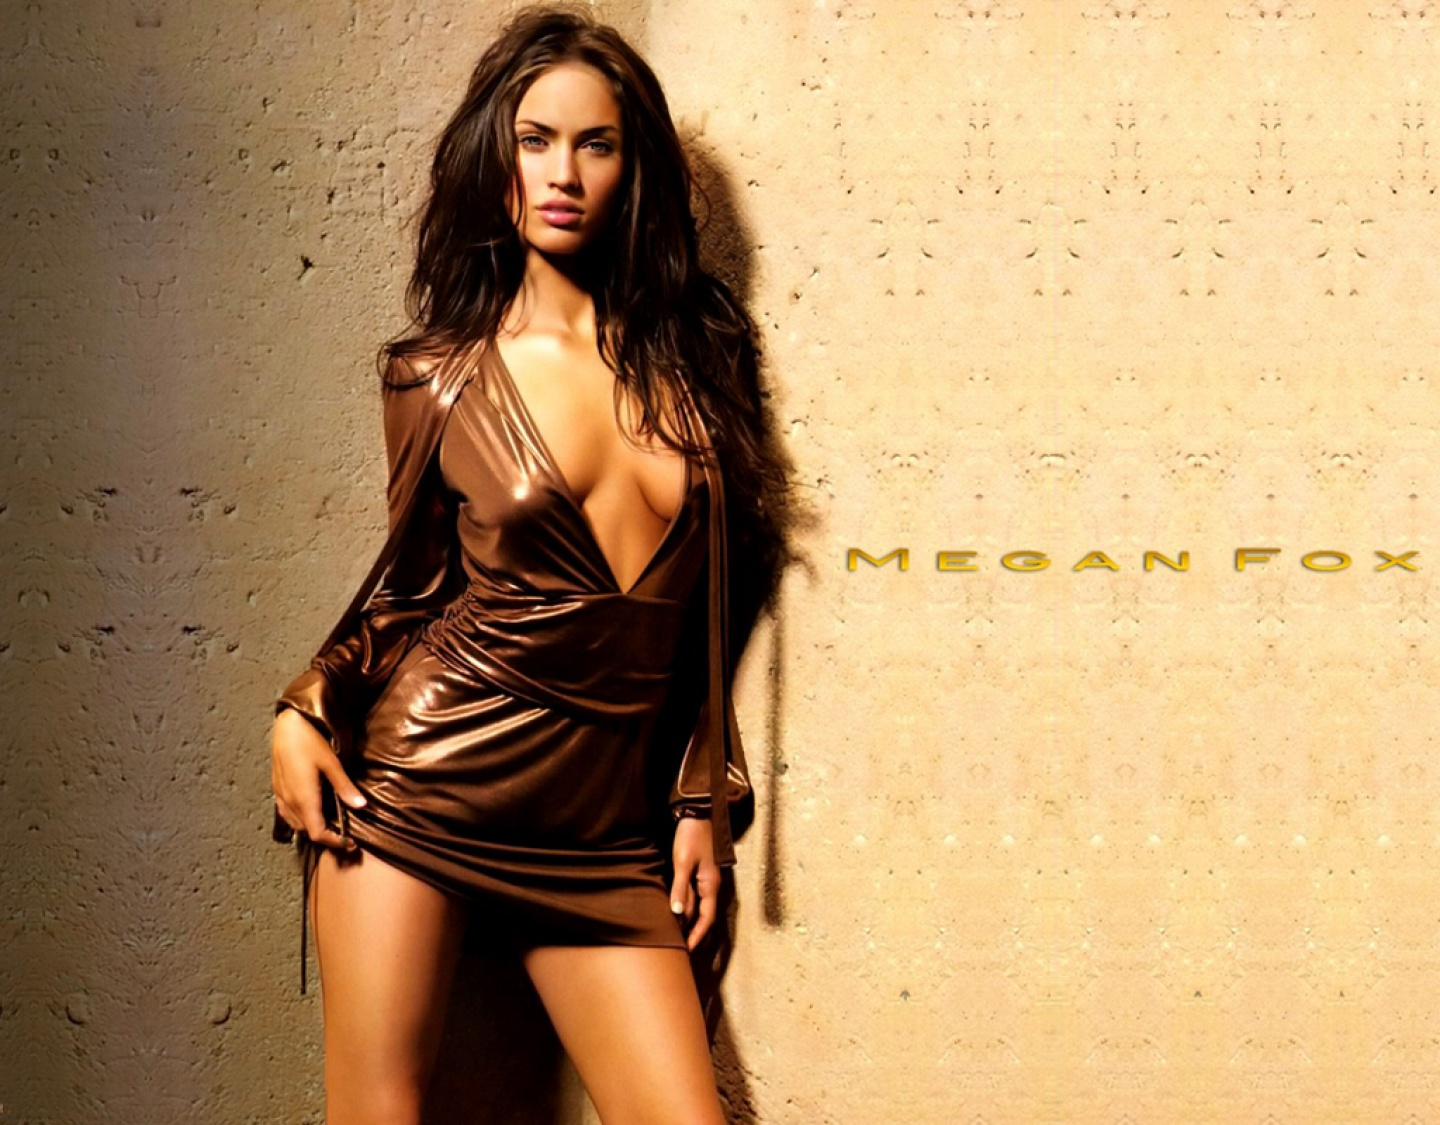 imagenes de megan fox